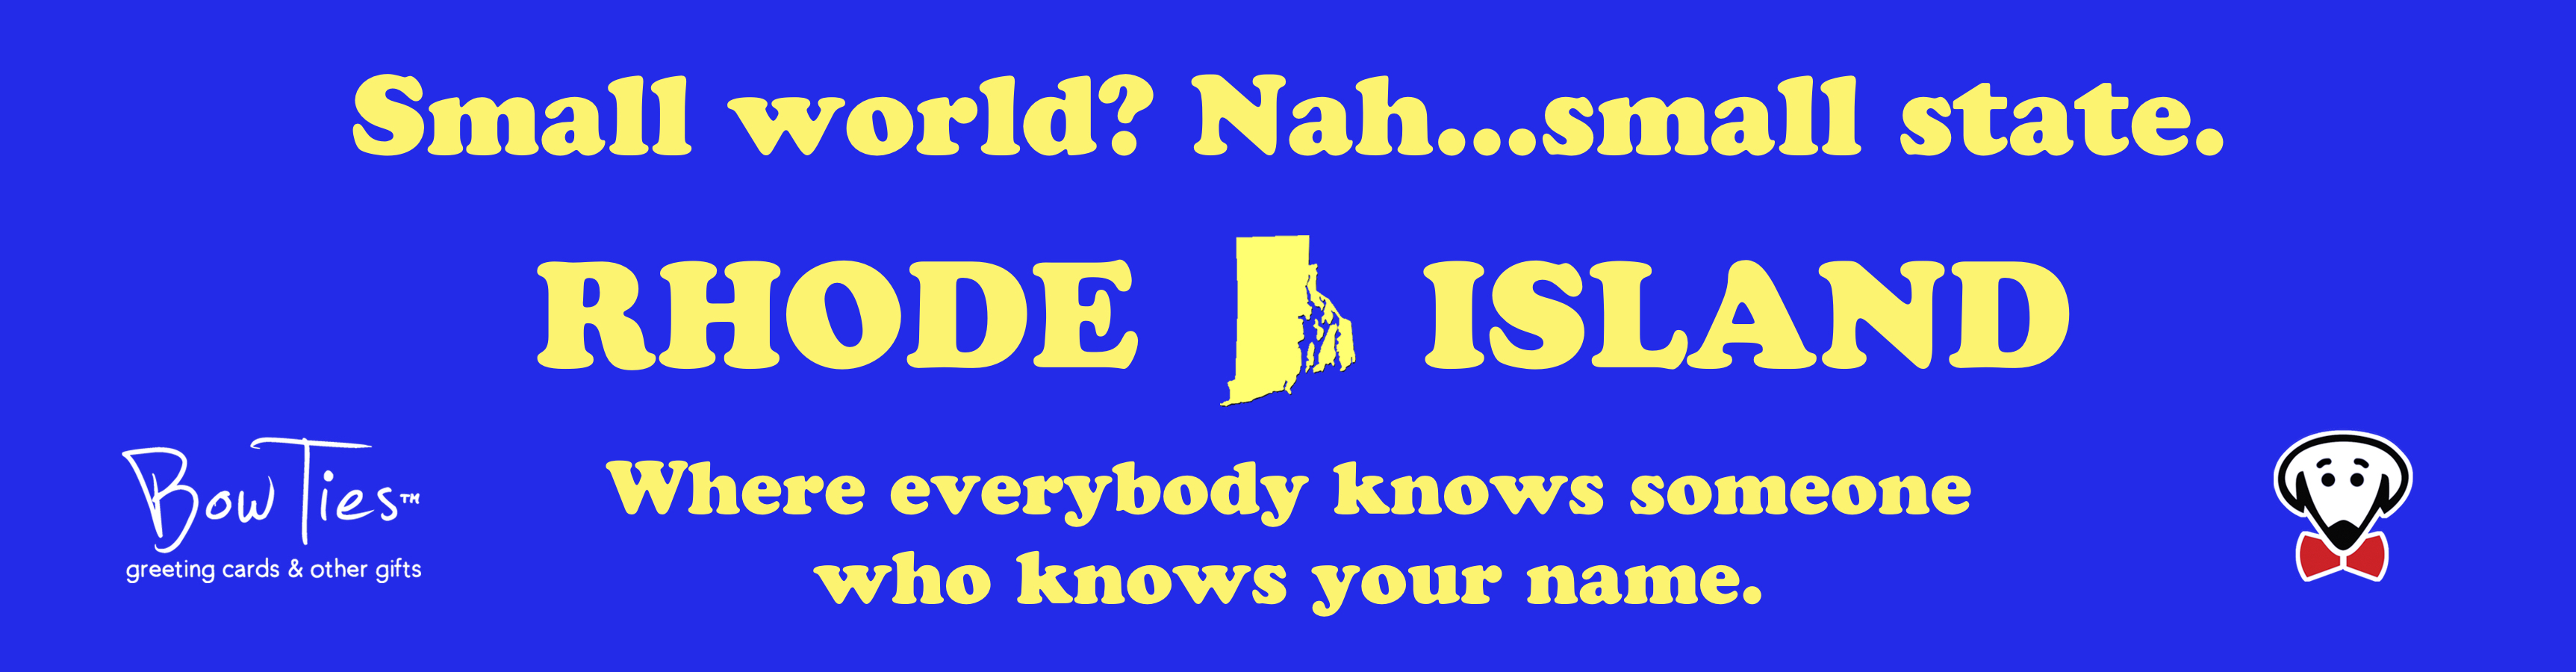 Small world? Nah…small state. RHODE ISLAND Where everybody knows someone who knows your name. – sticker